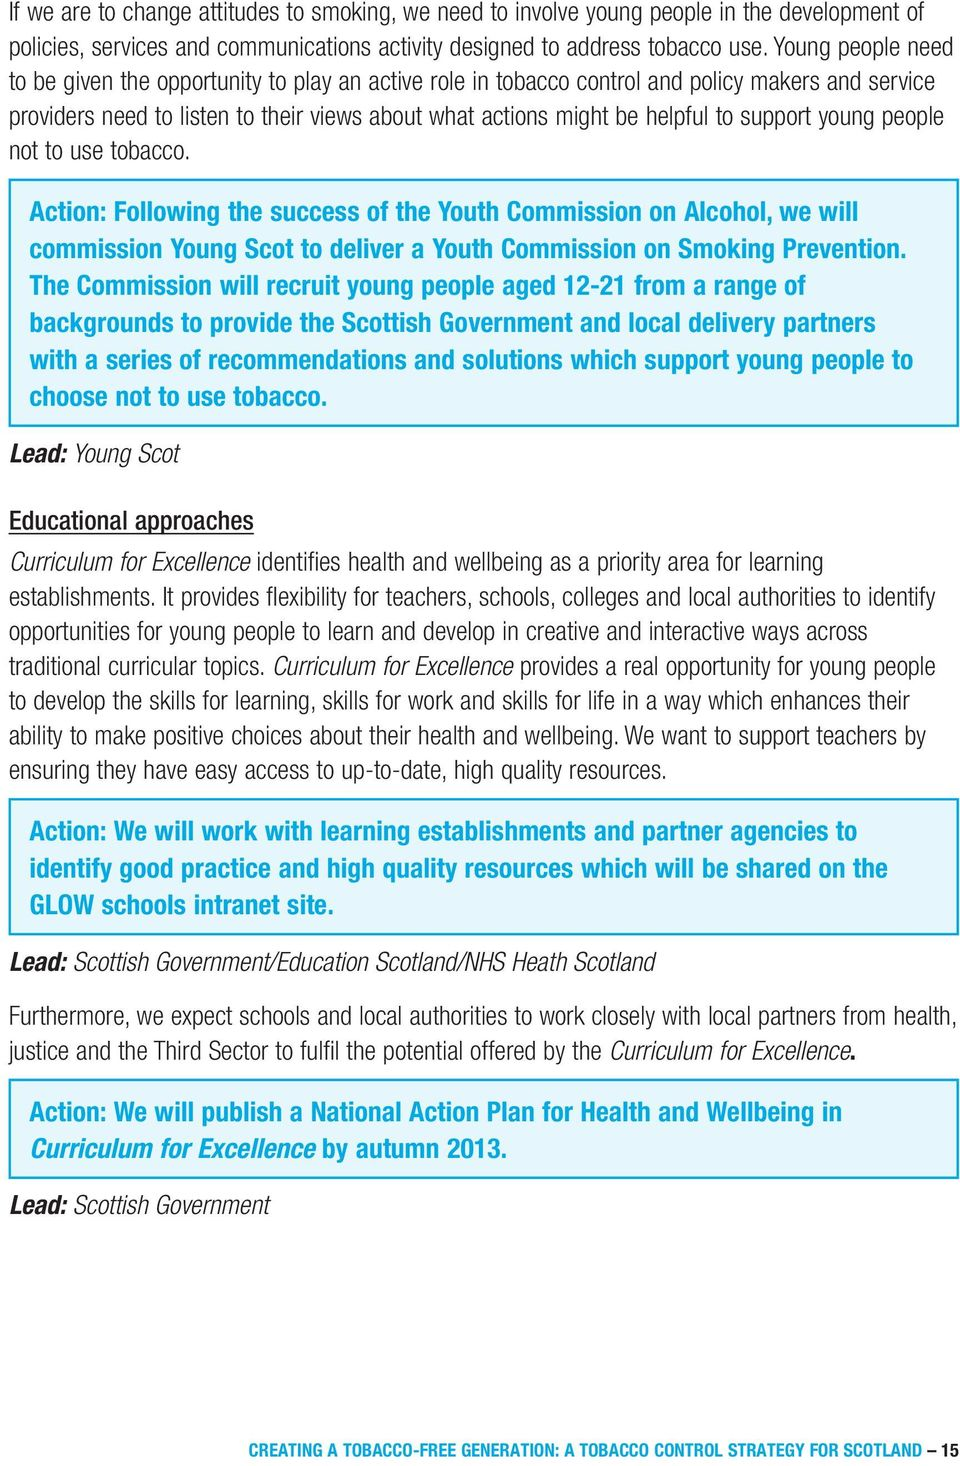 support young people not to use tobacco. Action: Following the success of the Youth Commission on Alcohol, we will commission Young Scot to deliver a Youth Commission on Smoking Prevention.